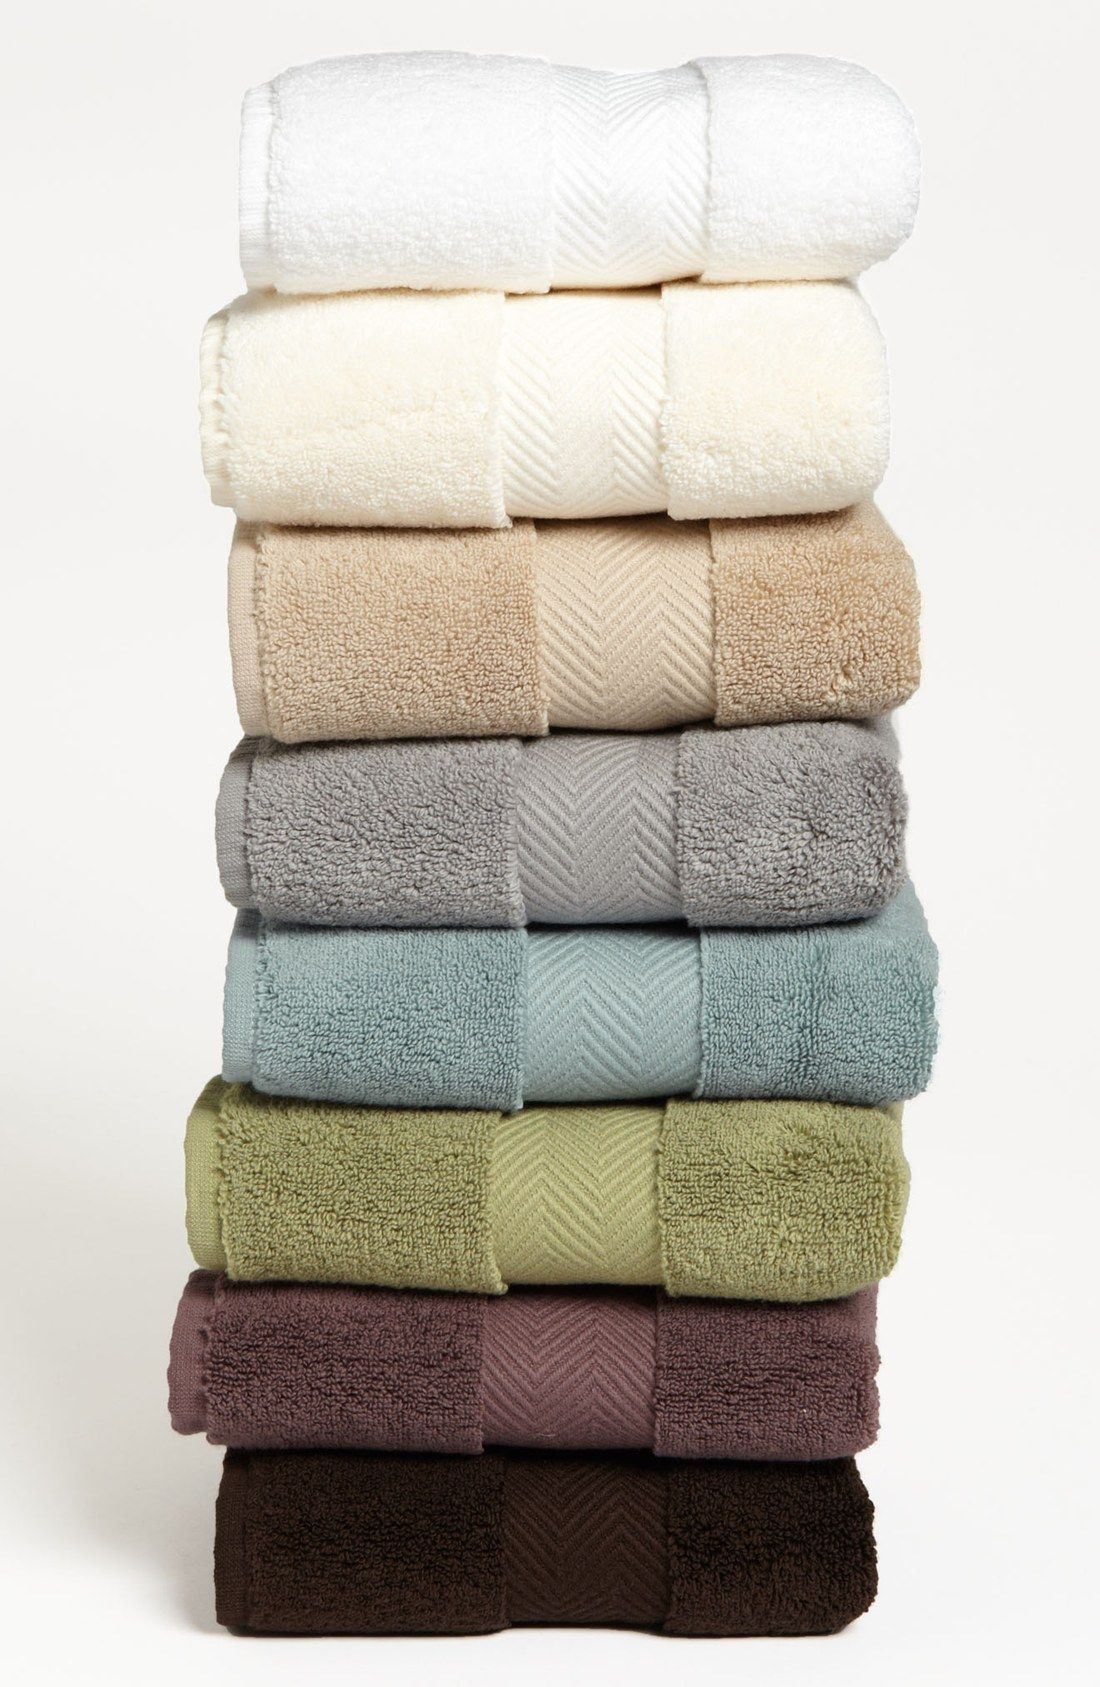 Hydrocotton Bath Towels Enchanting Now This Looks Comfy  Hydrocotton Ultra Soft Hand Towel Design Decoration